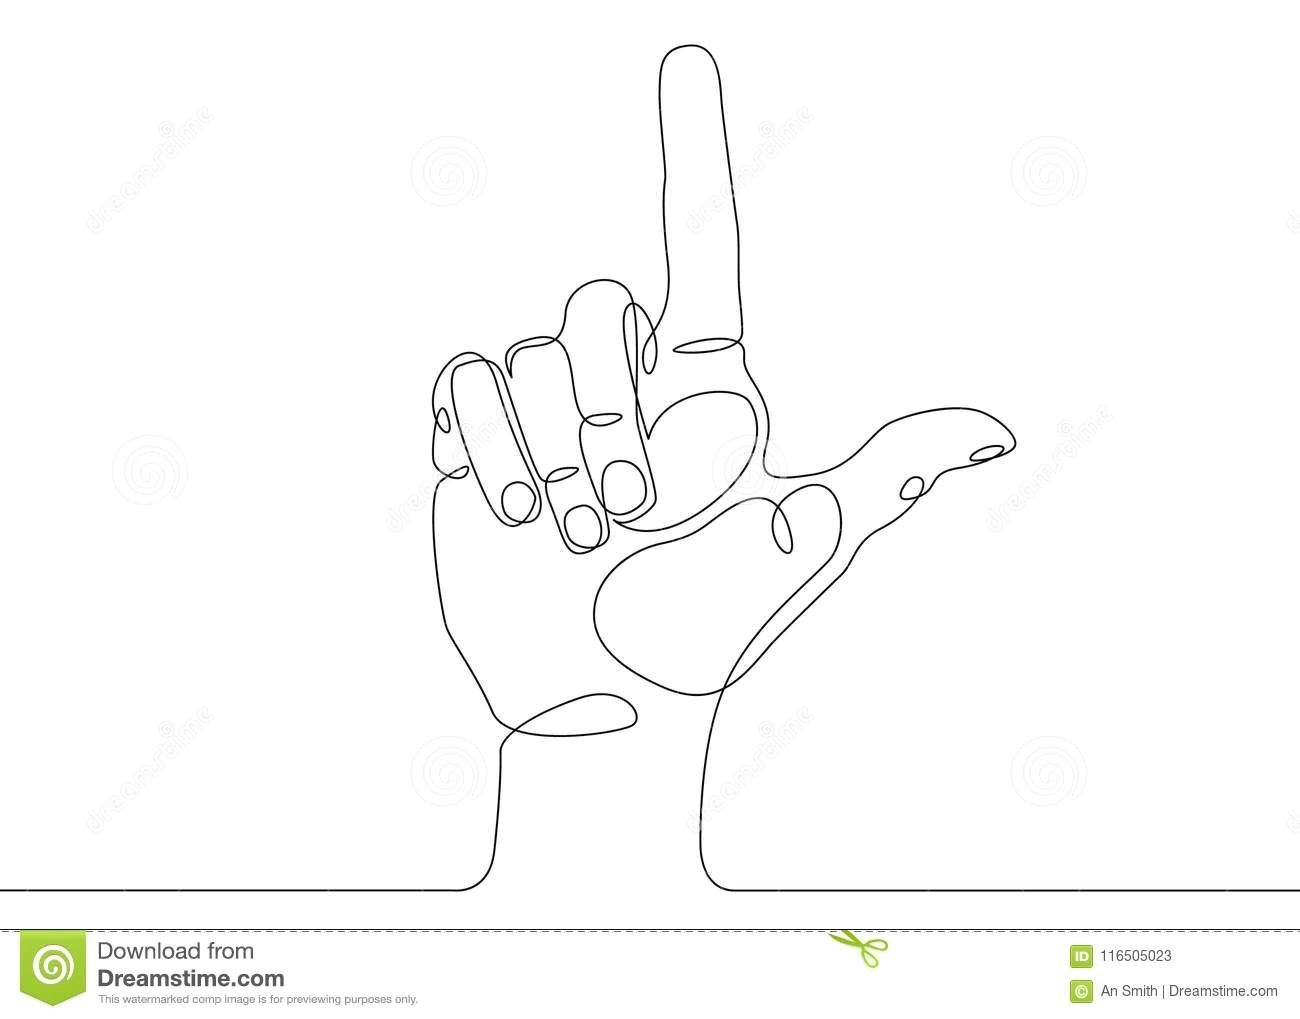 continuous one line drawing hand palm fingers gestures hand pointing direction finger